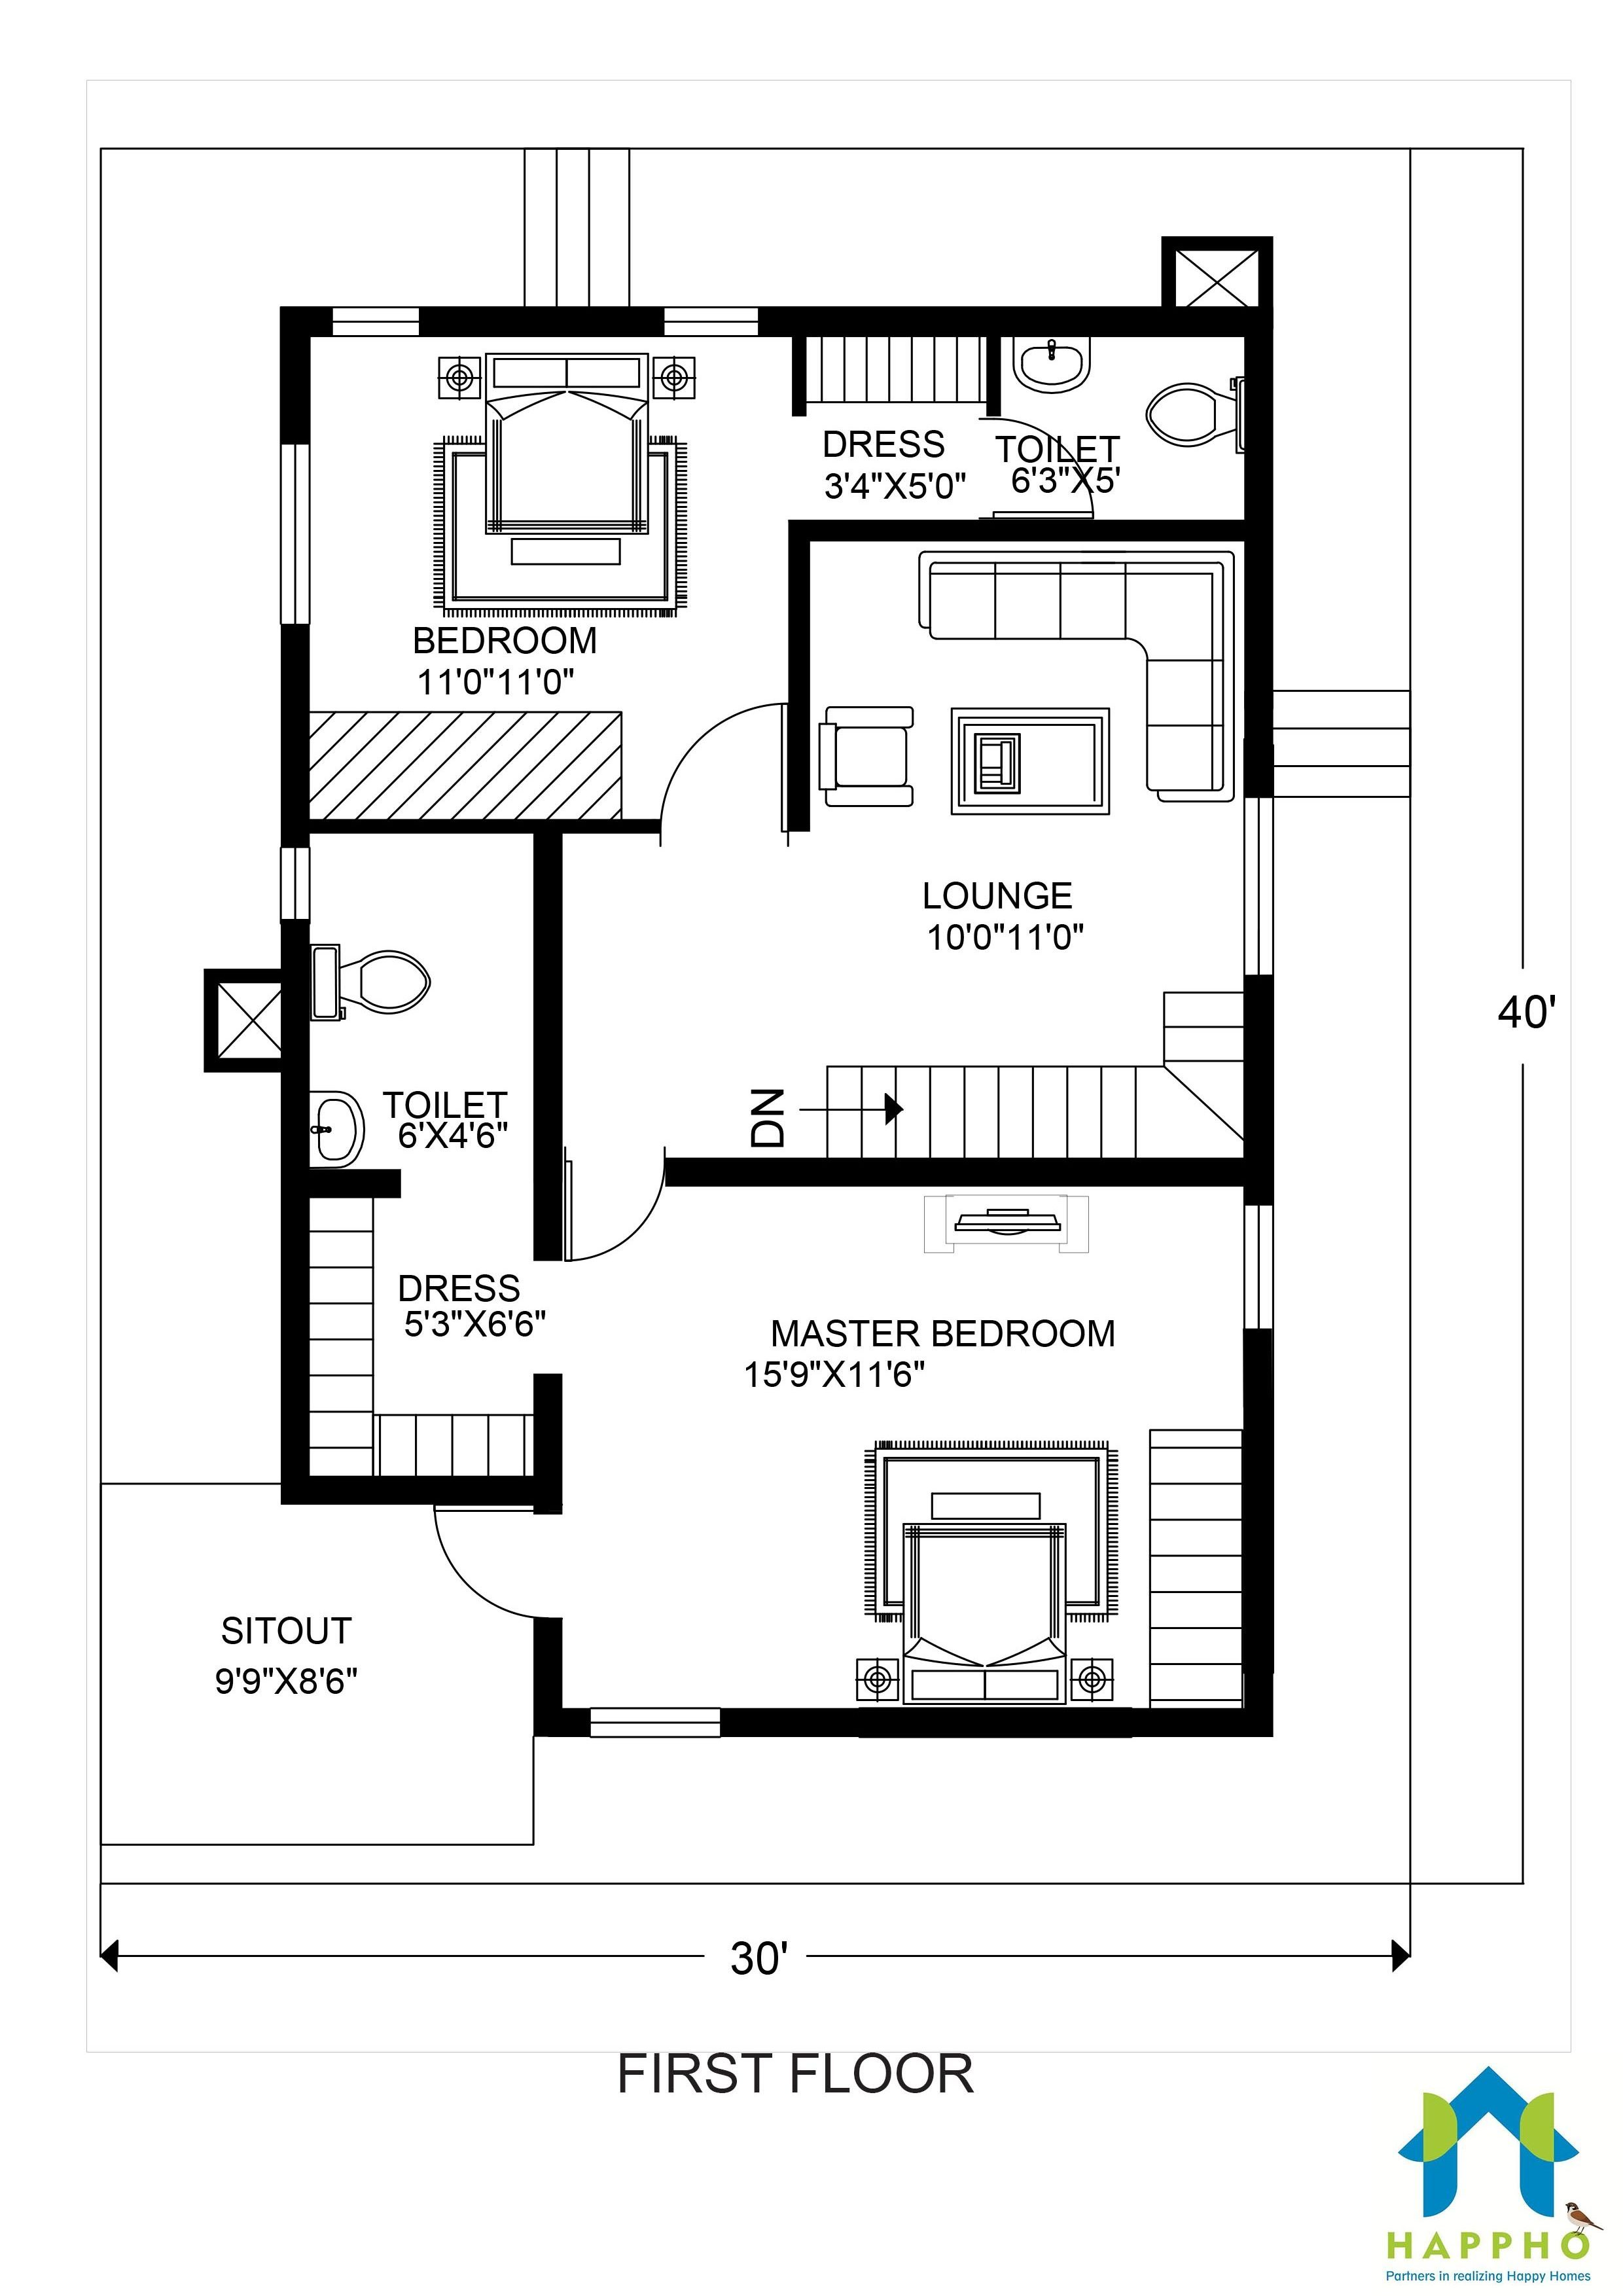 30-40duplex-FIRST-e1537968609174  Sq Ft House Plans One Bedroom on 900 square foot 1 bedroom house plans, cape cod house plans, 1100 square feet house plans, 2 bedroom house plans,